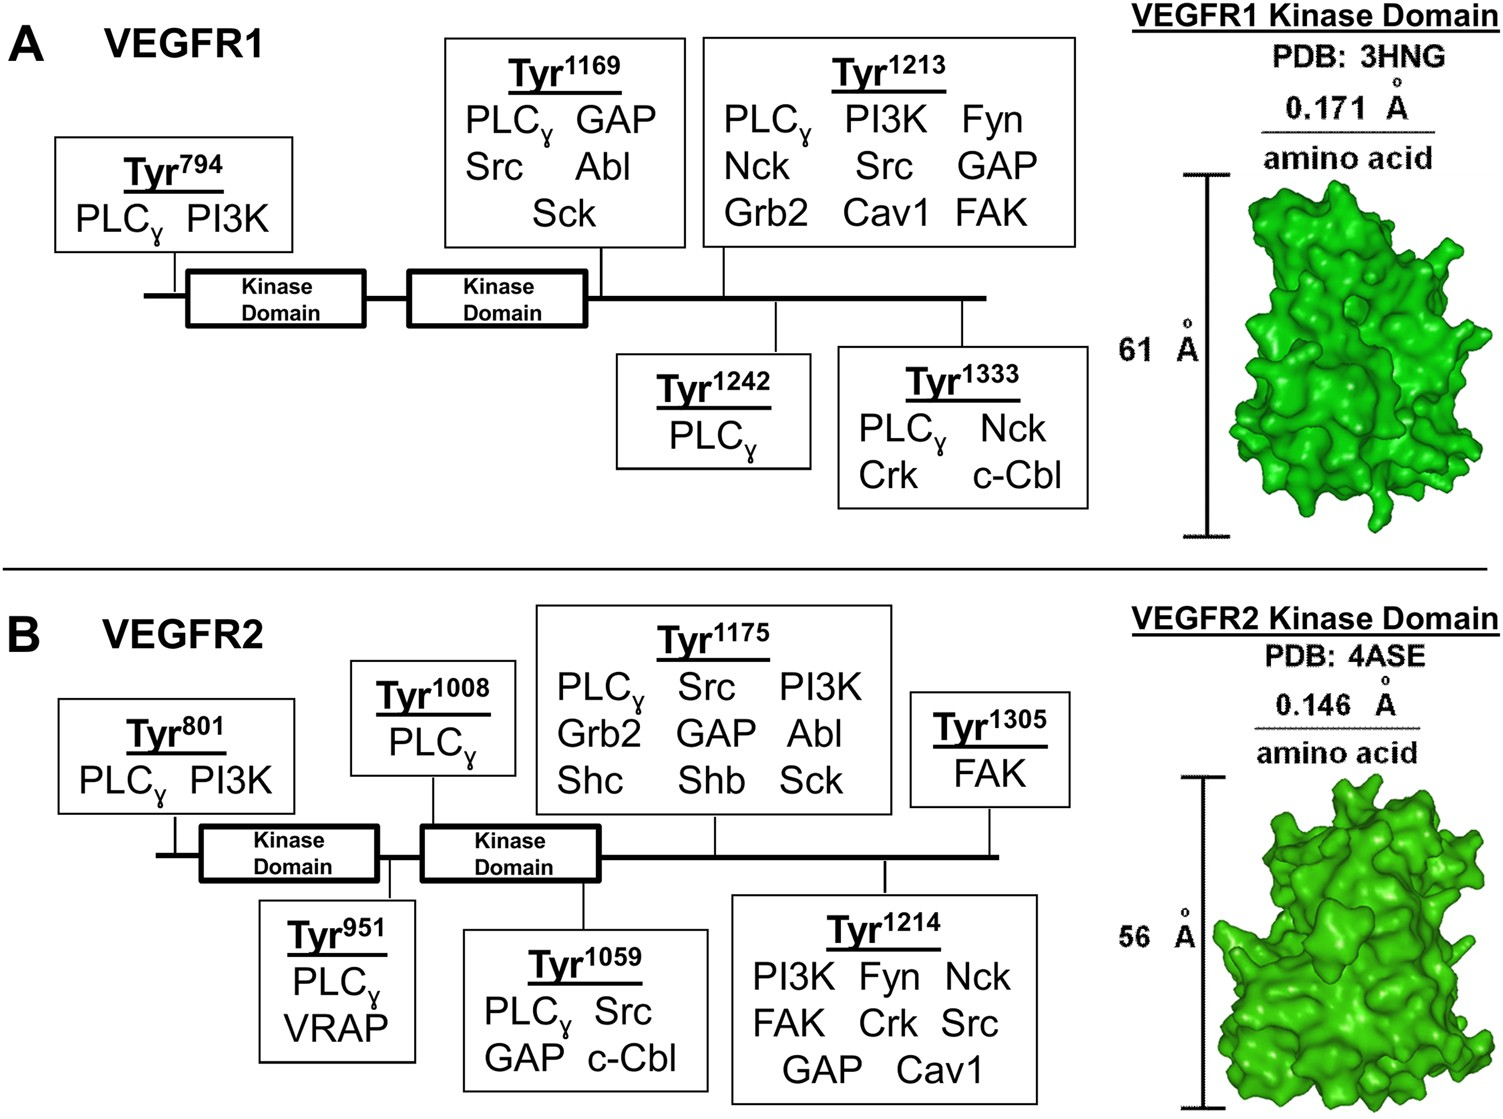 VEGFR1 promotes cell migration and proliferation through PLCγ and